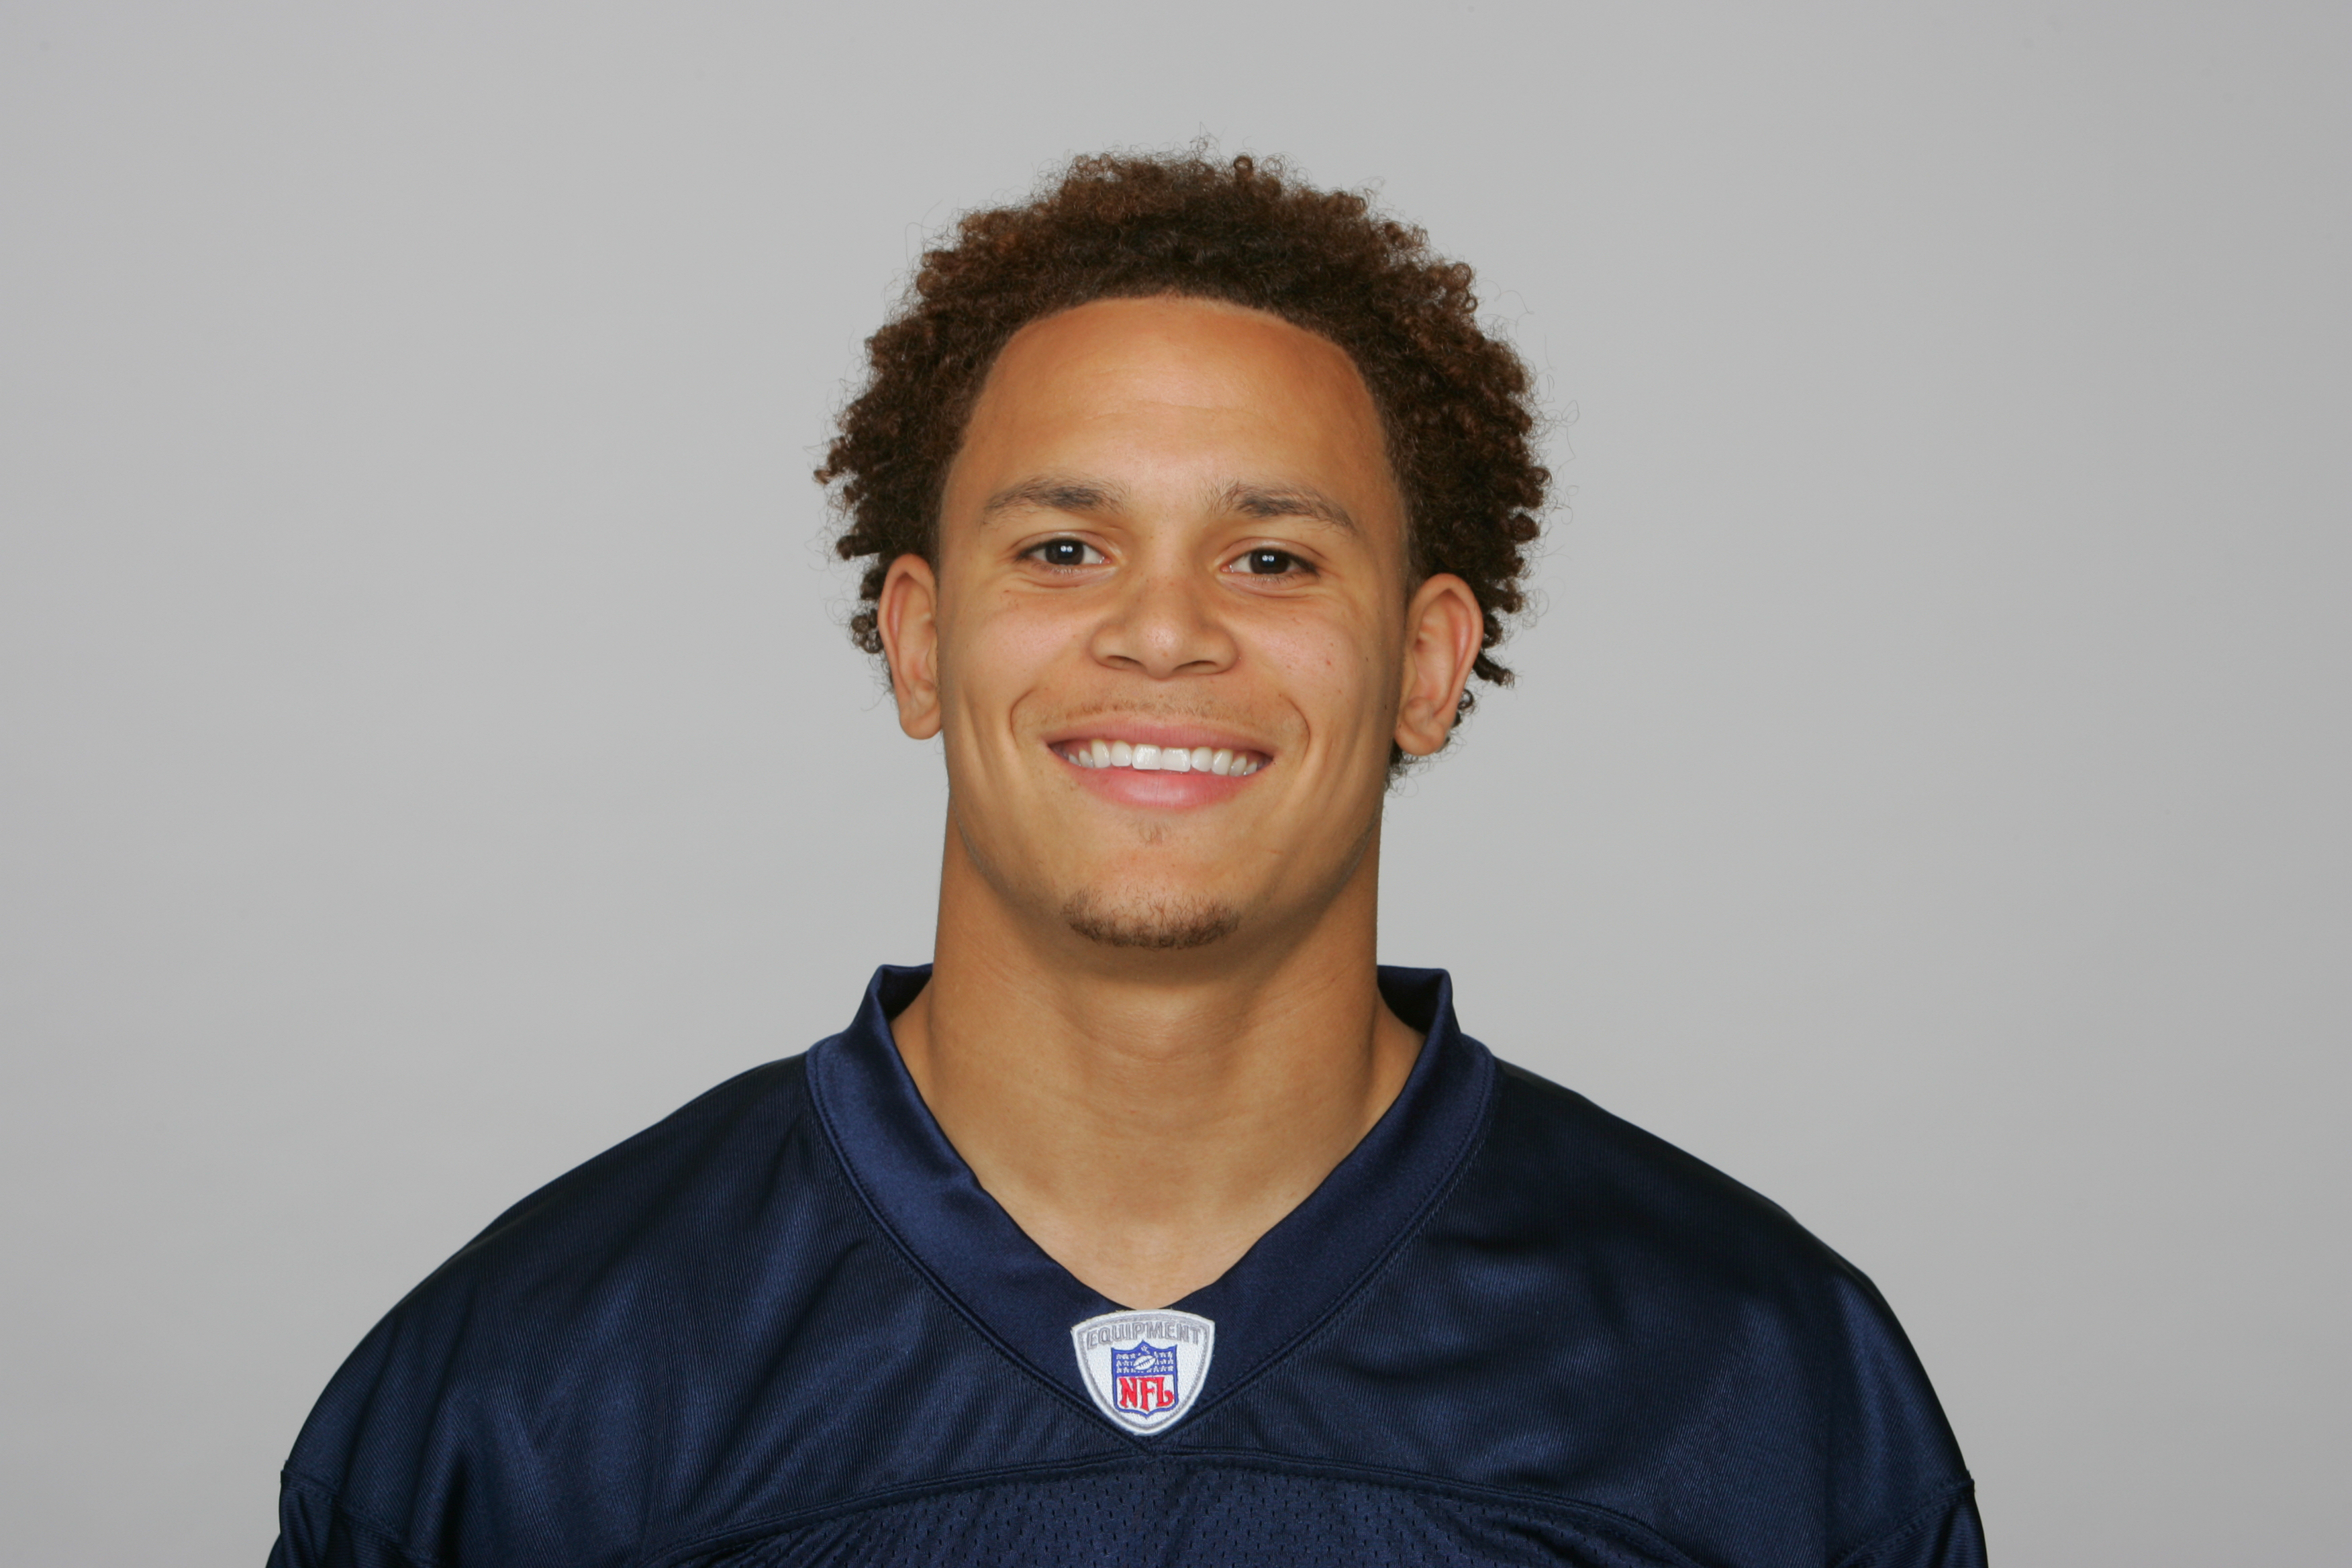 NASHVILLE, TN - CIRCA 2010: In this handout image provided by the NFL,Cortland Finnegan of the Tennessee Titans poses for his 2010 NFL headshot circa 2010 at Baptist Sports Park in Nashville, Tennessee. (Photo by NFL via Getty Images)